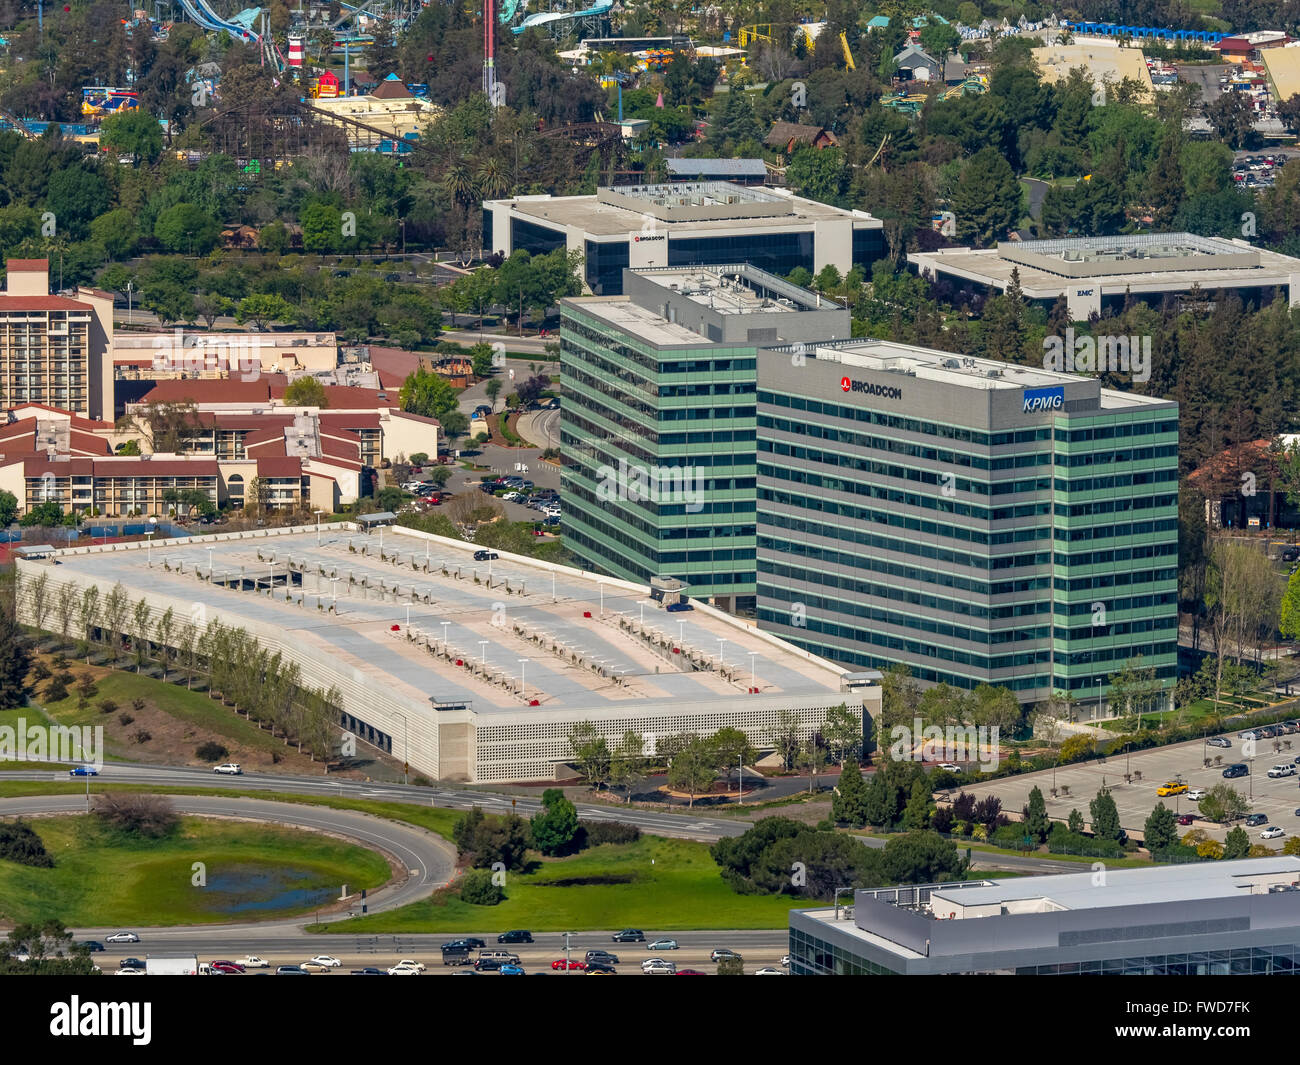 Vishay Americas inc. Broadcom ca technologies, Sophos, Silicon Valley, California - Stock Image